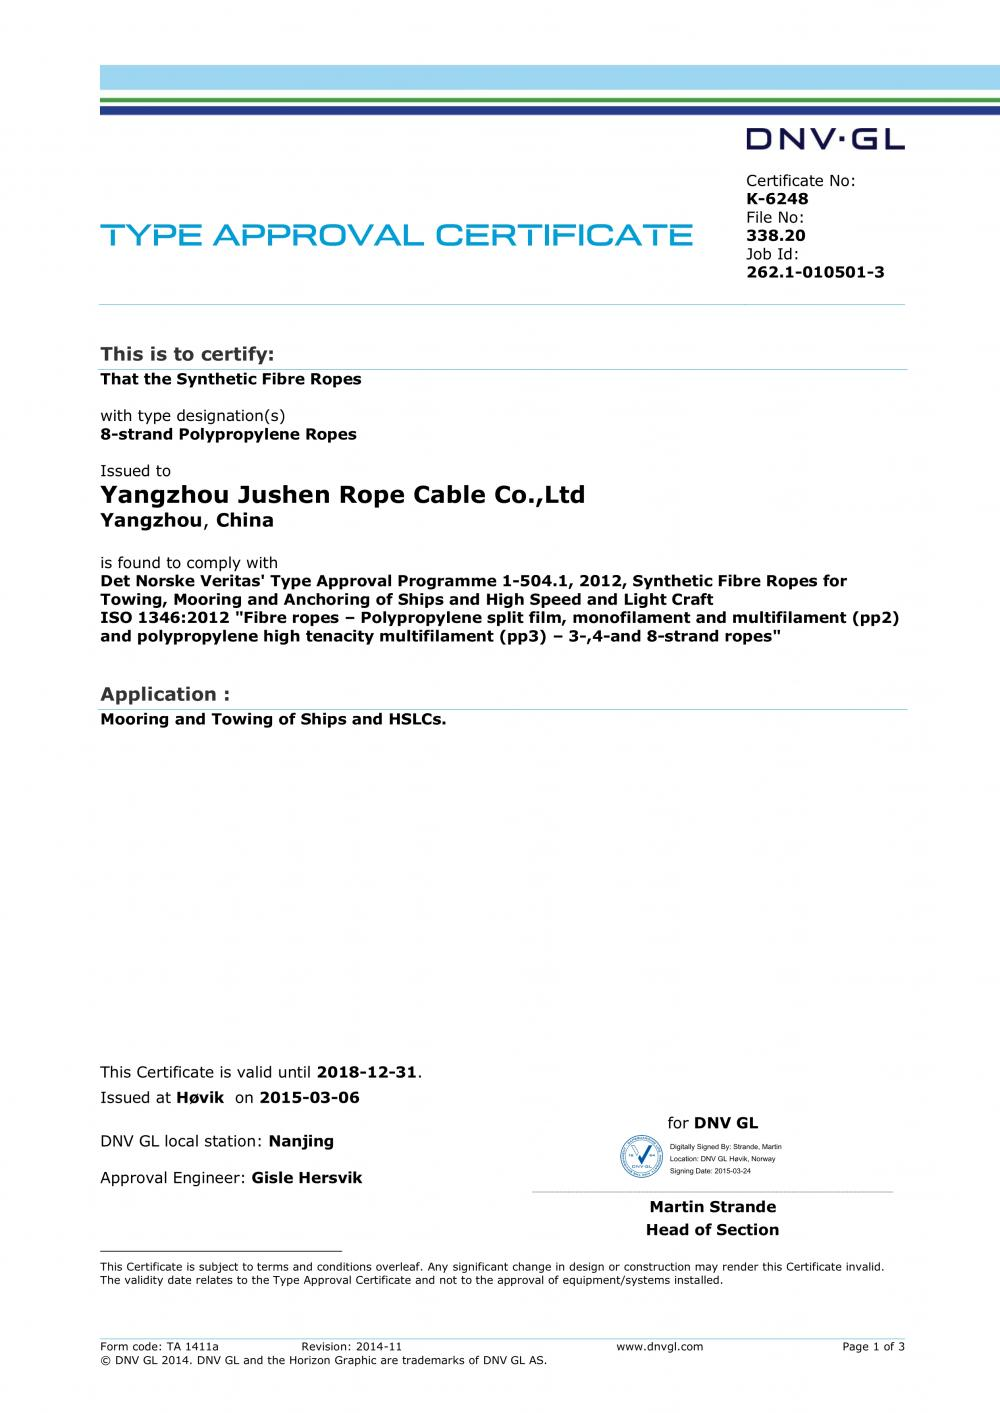 DNV.GL Certificate Of Works Approval